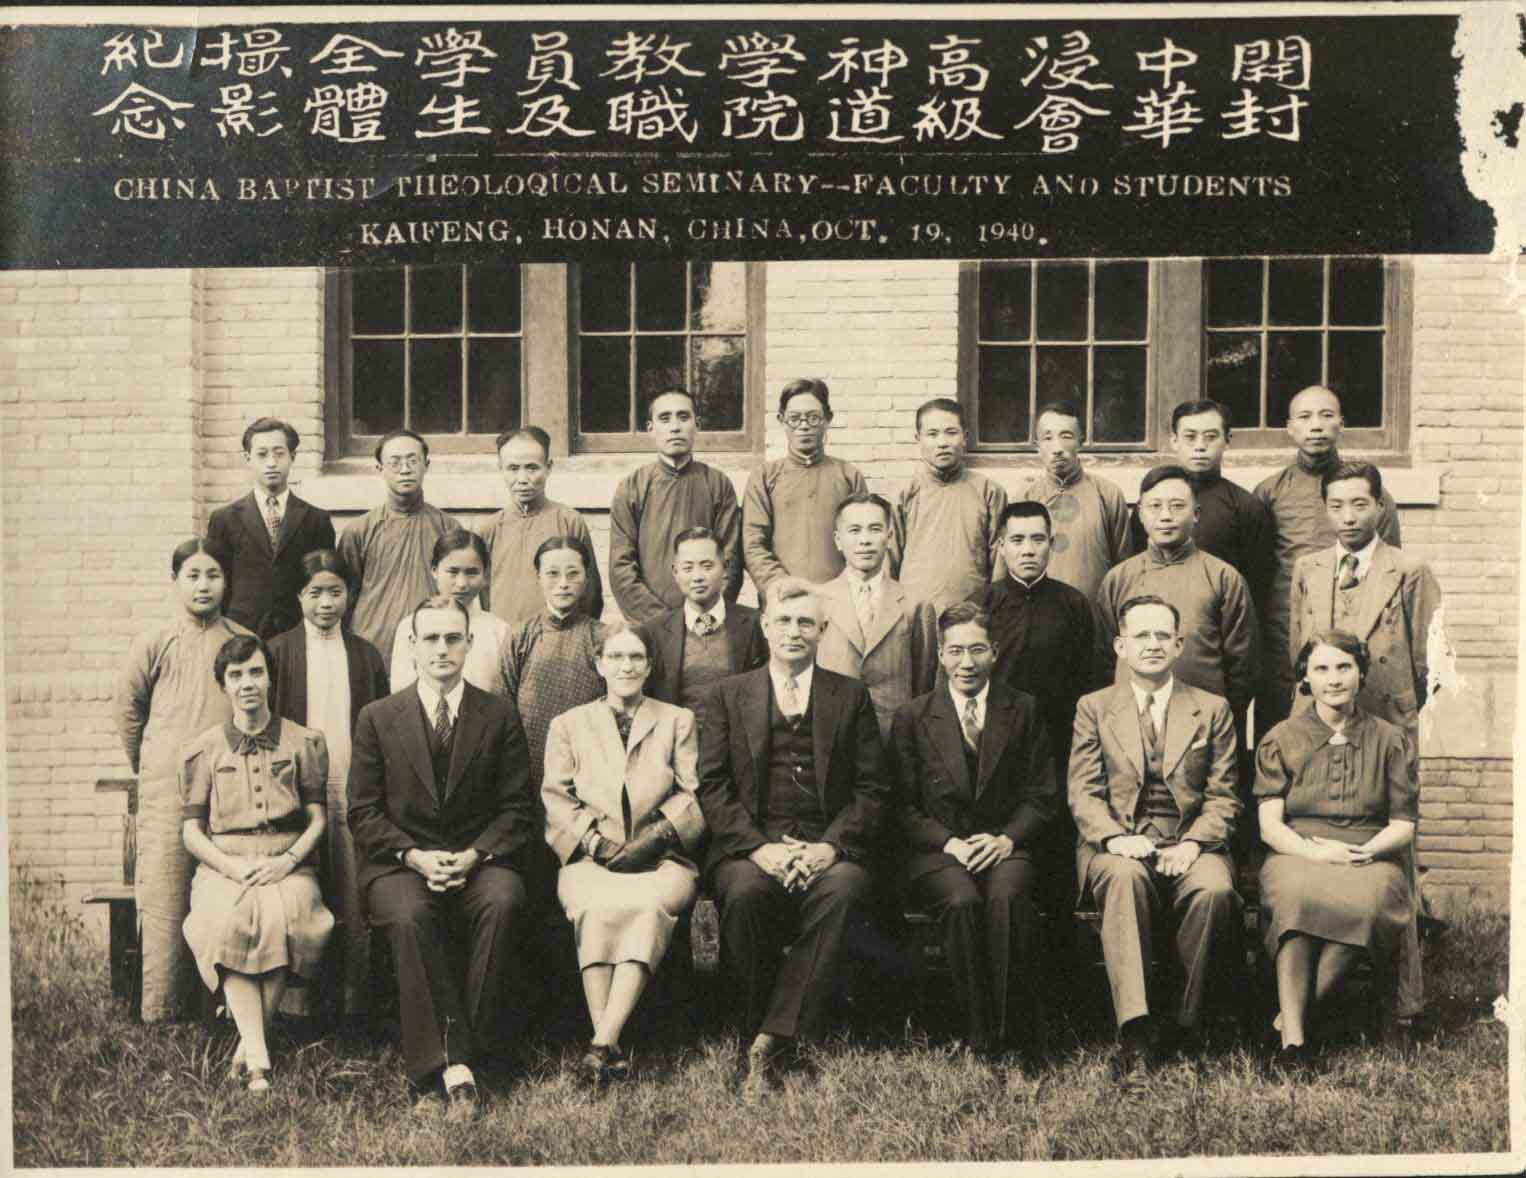 First graduating class of the China Baptist Theological Seminary, 1940